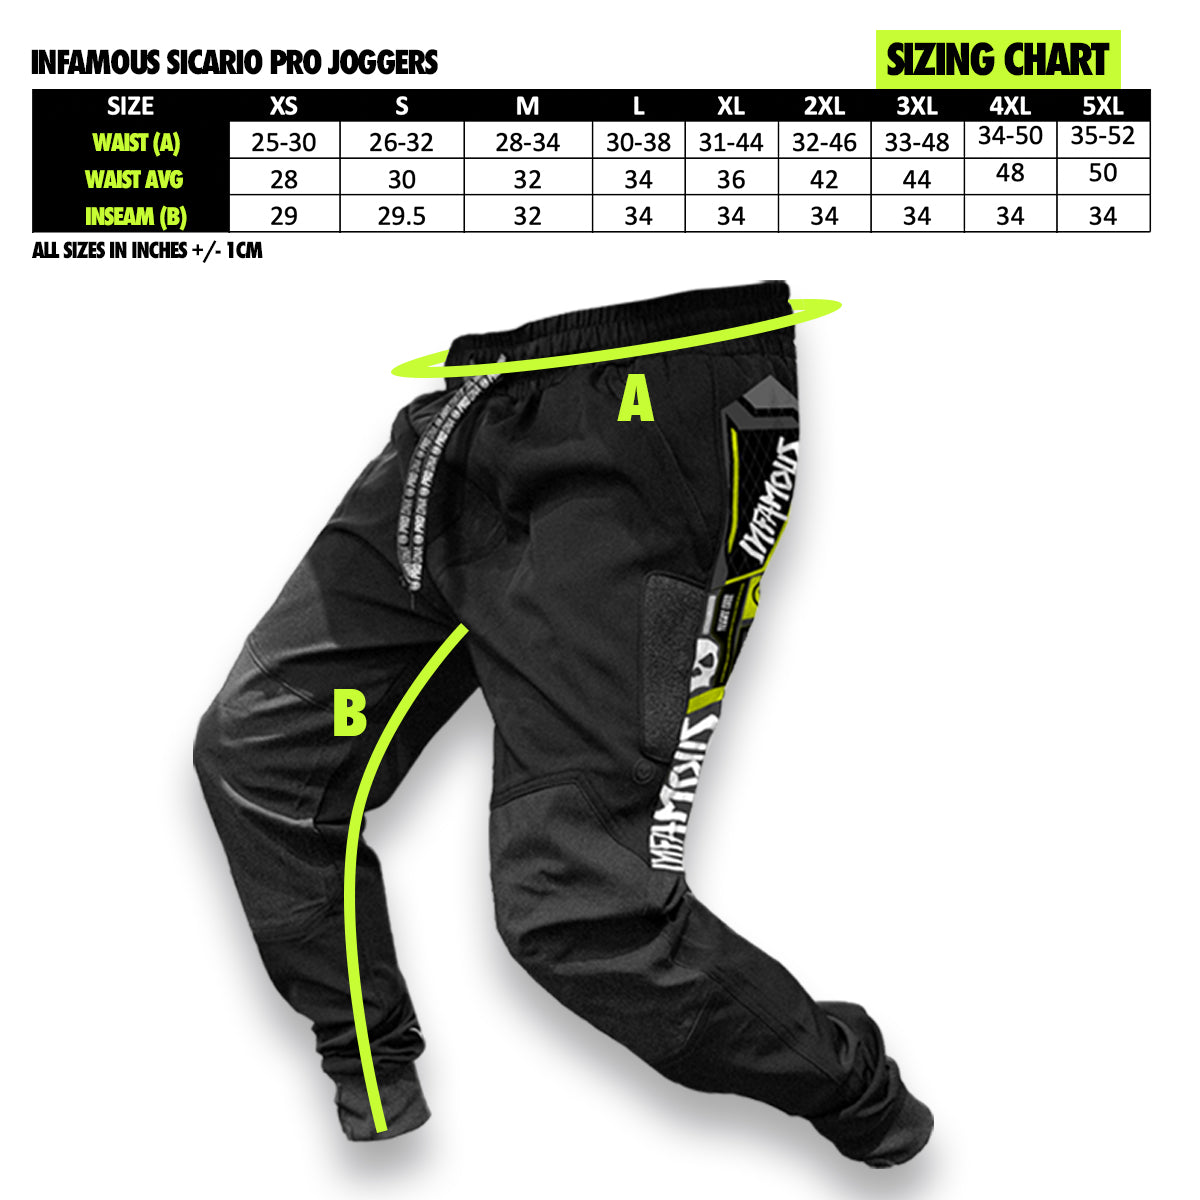 Infamous Sicario Pro Joggers Sizing Chart